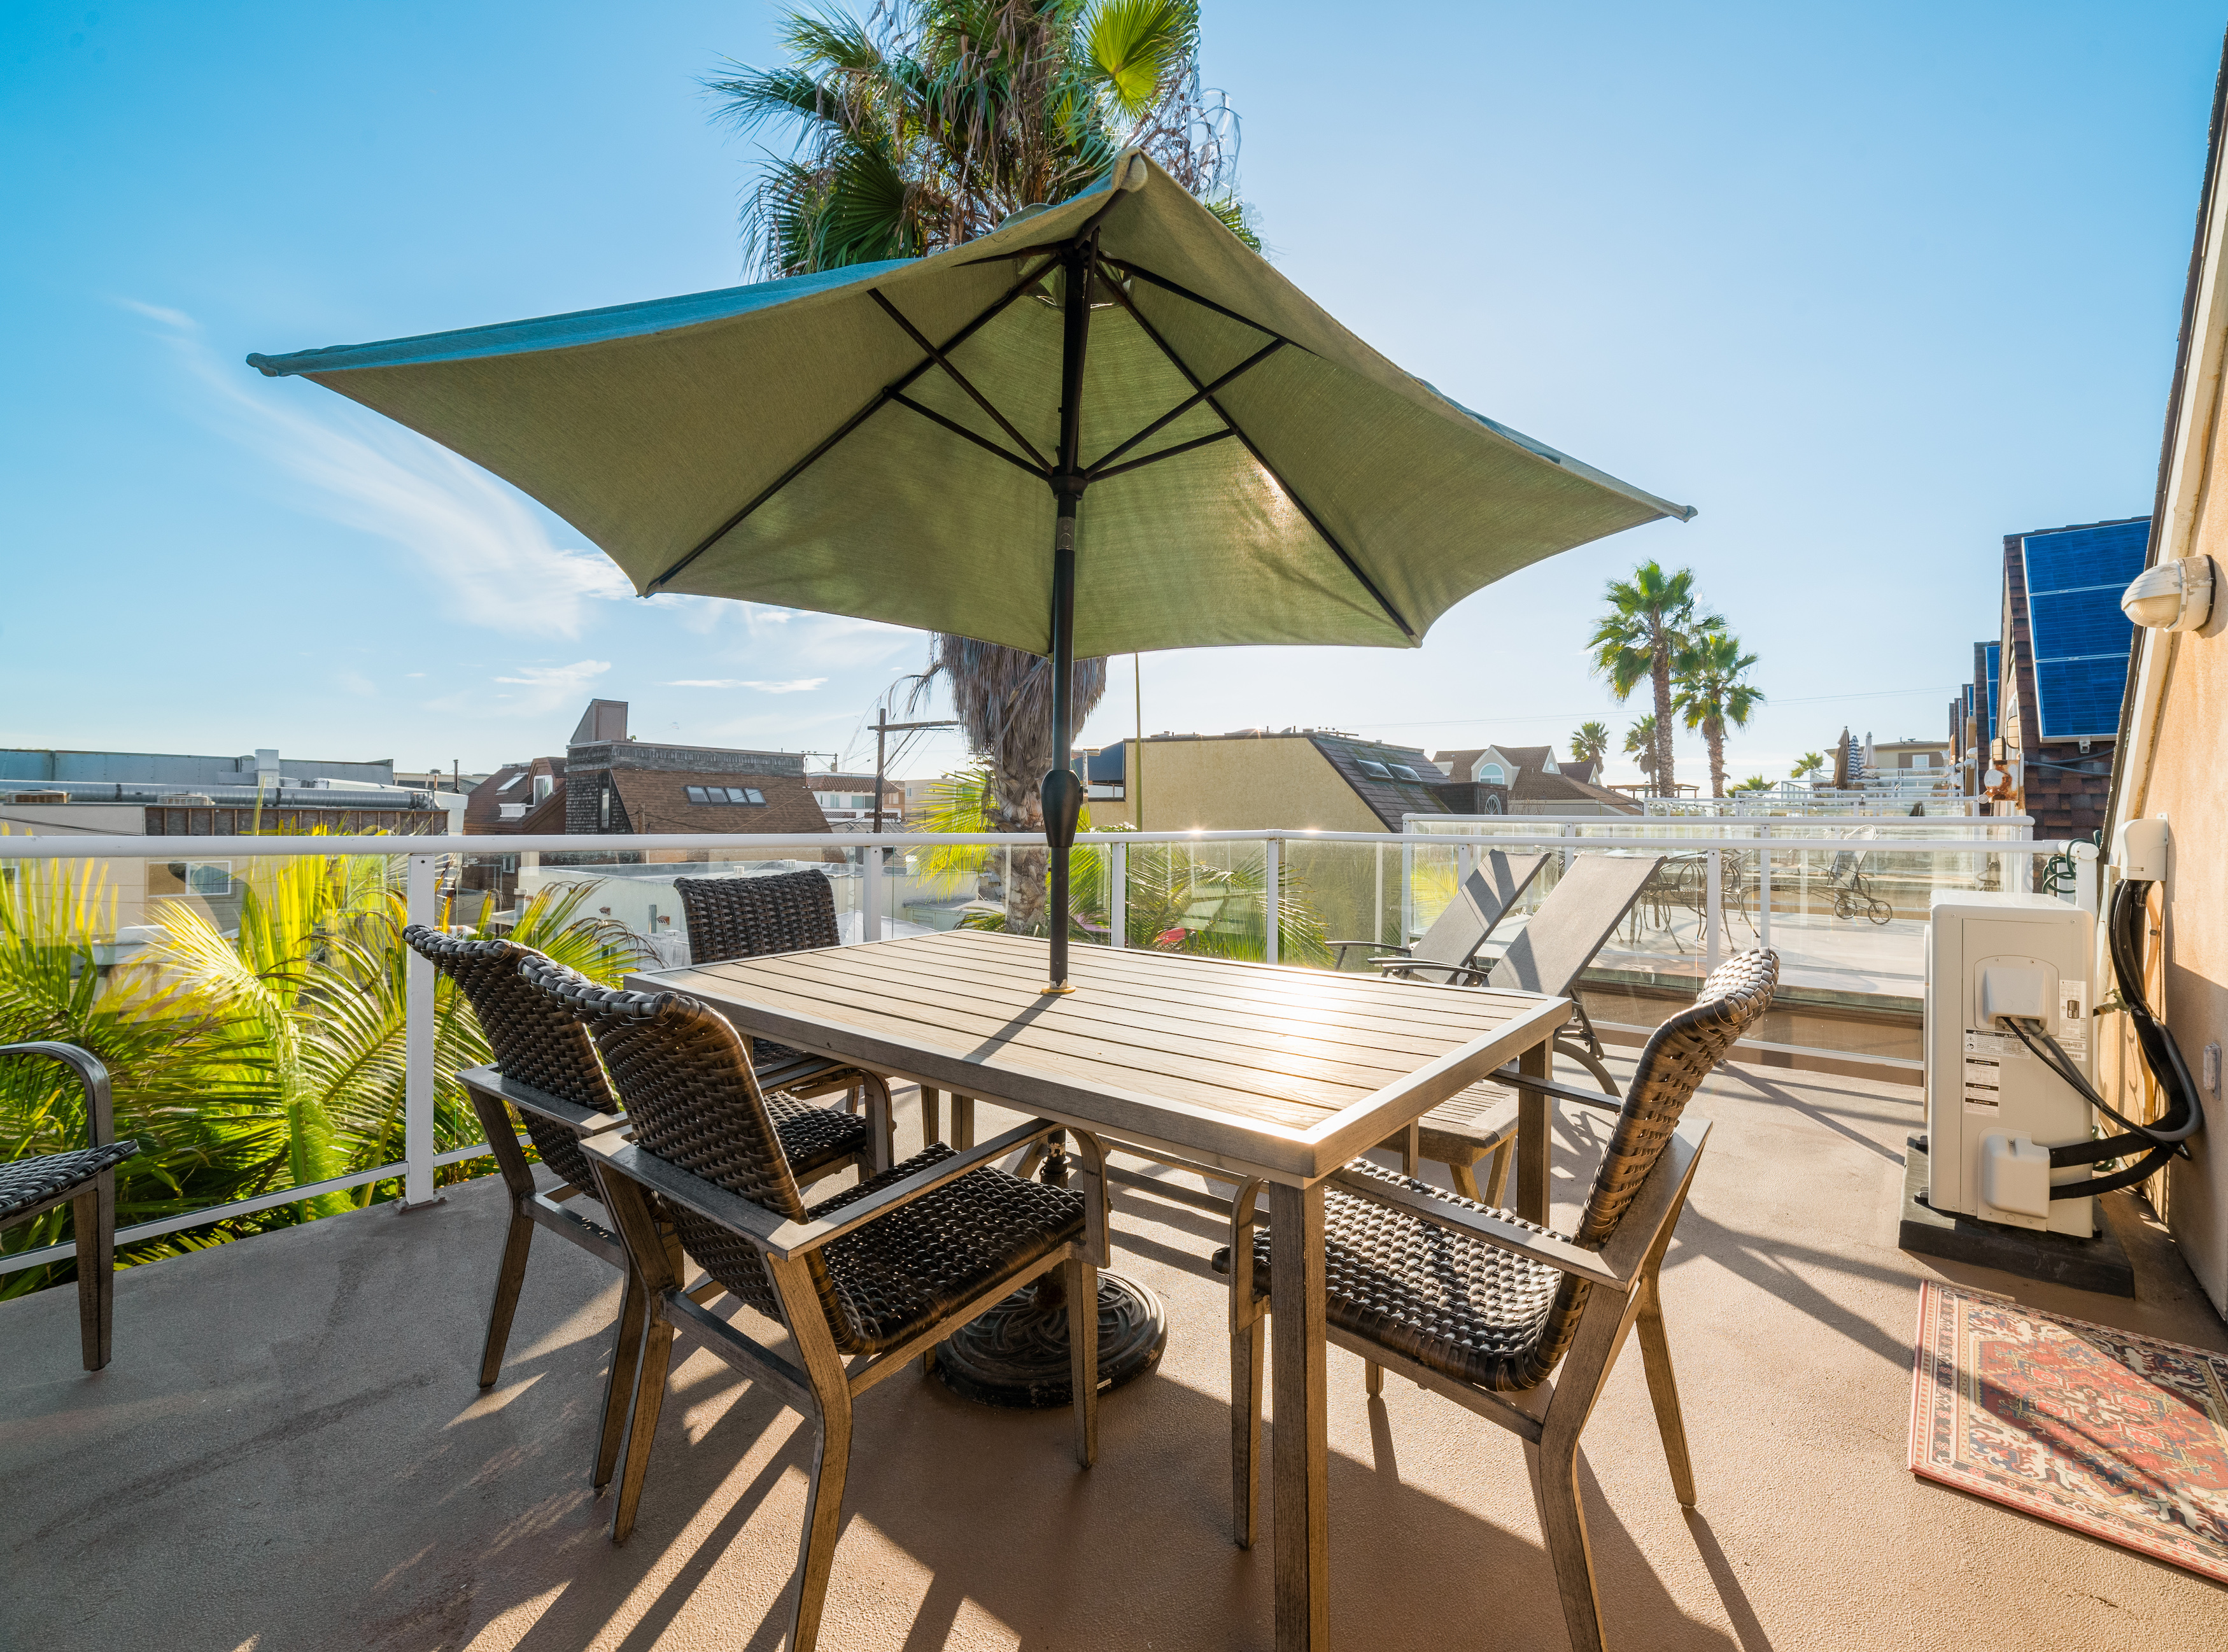 Third Floor Deck with Outdoor Dining & Loungers